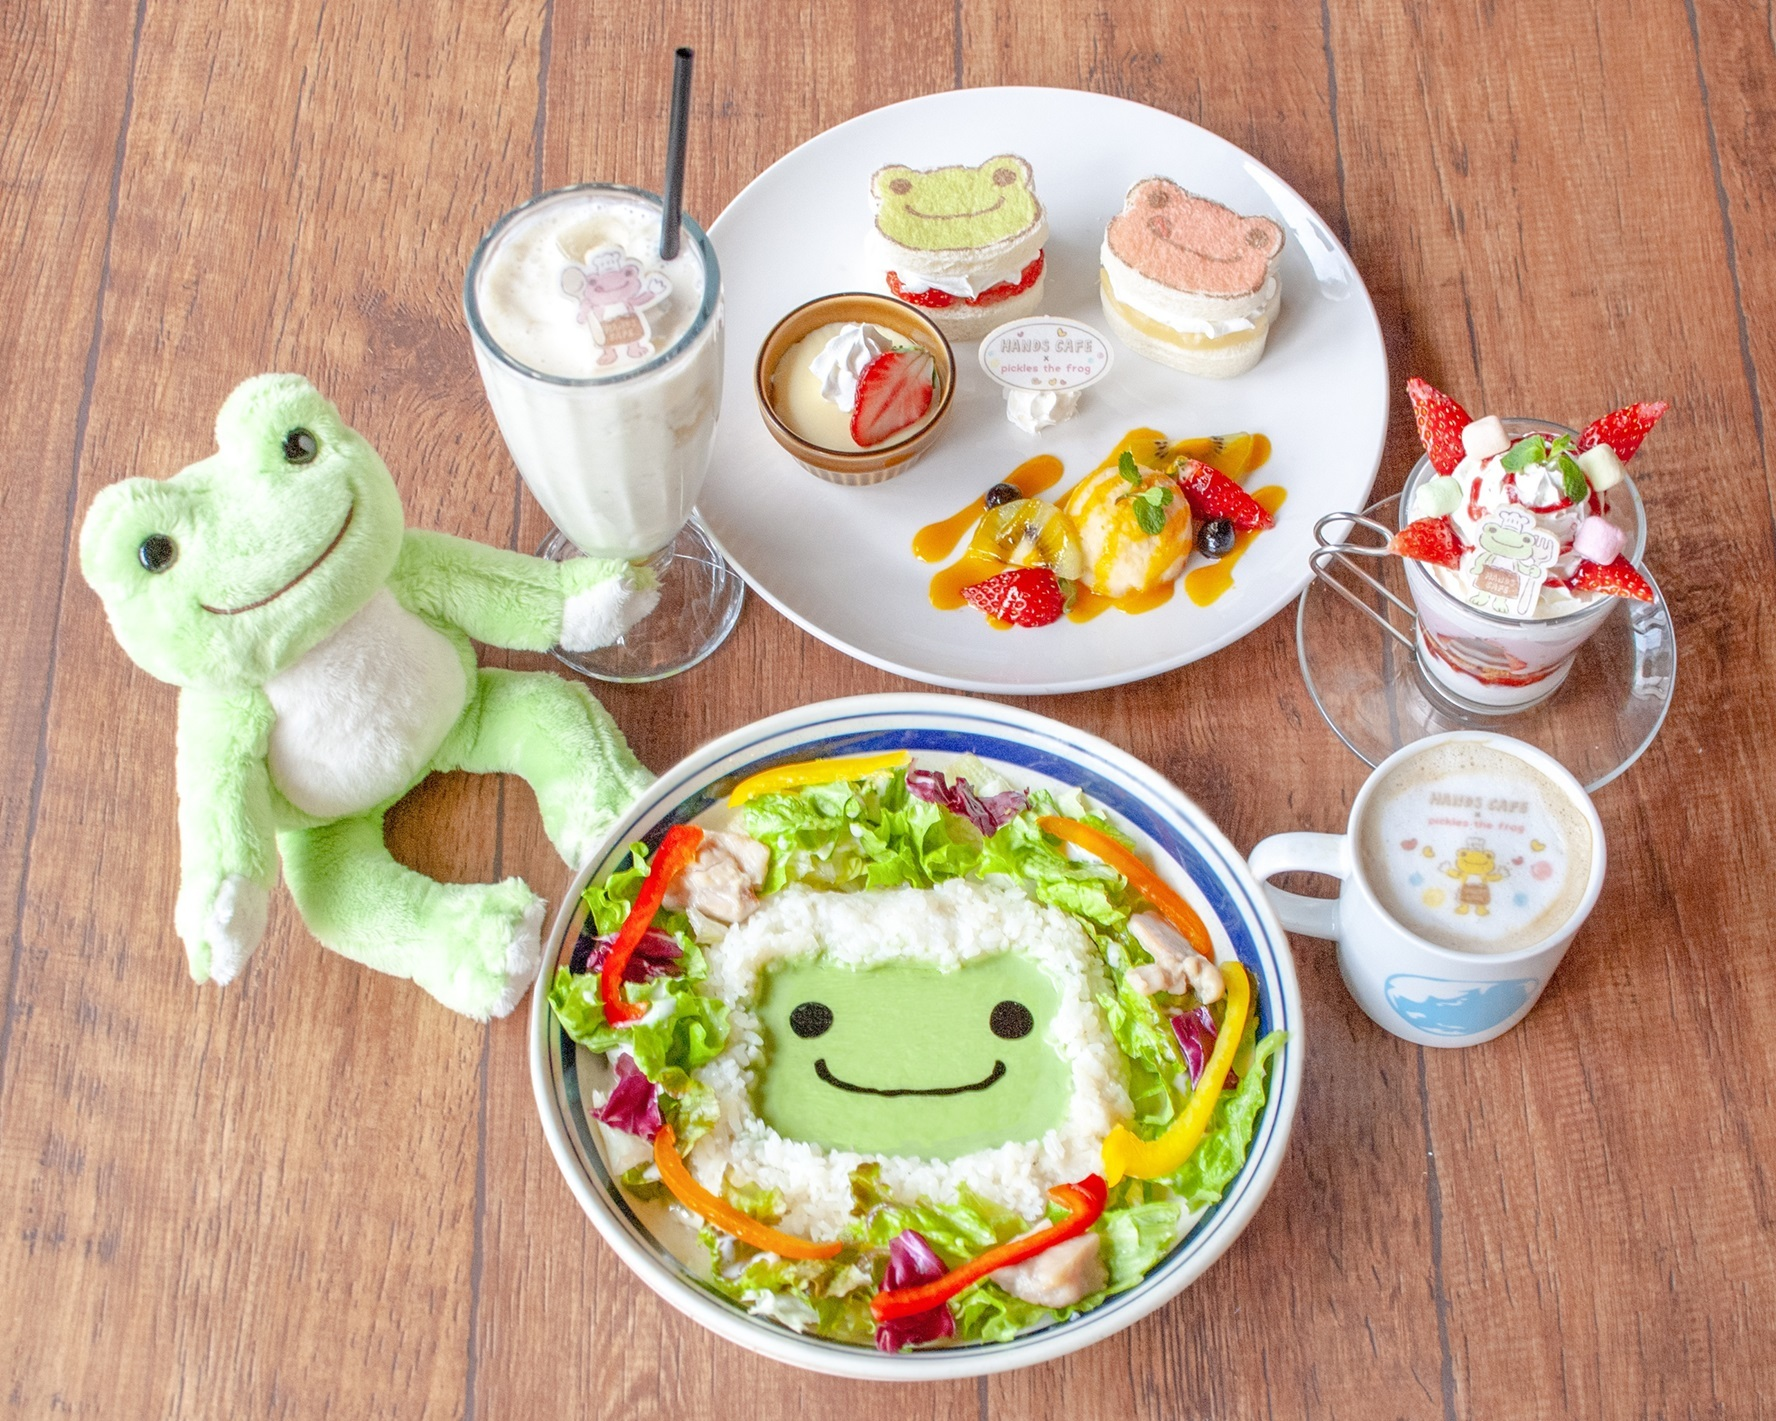 pickles-the-frog-hands-cafe02